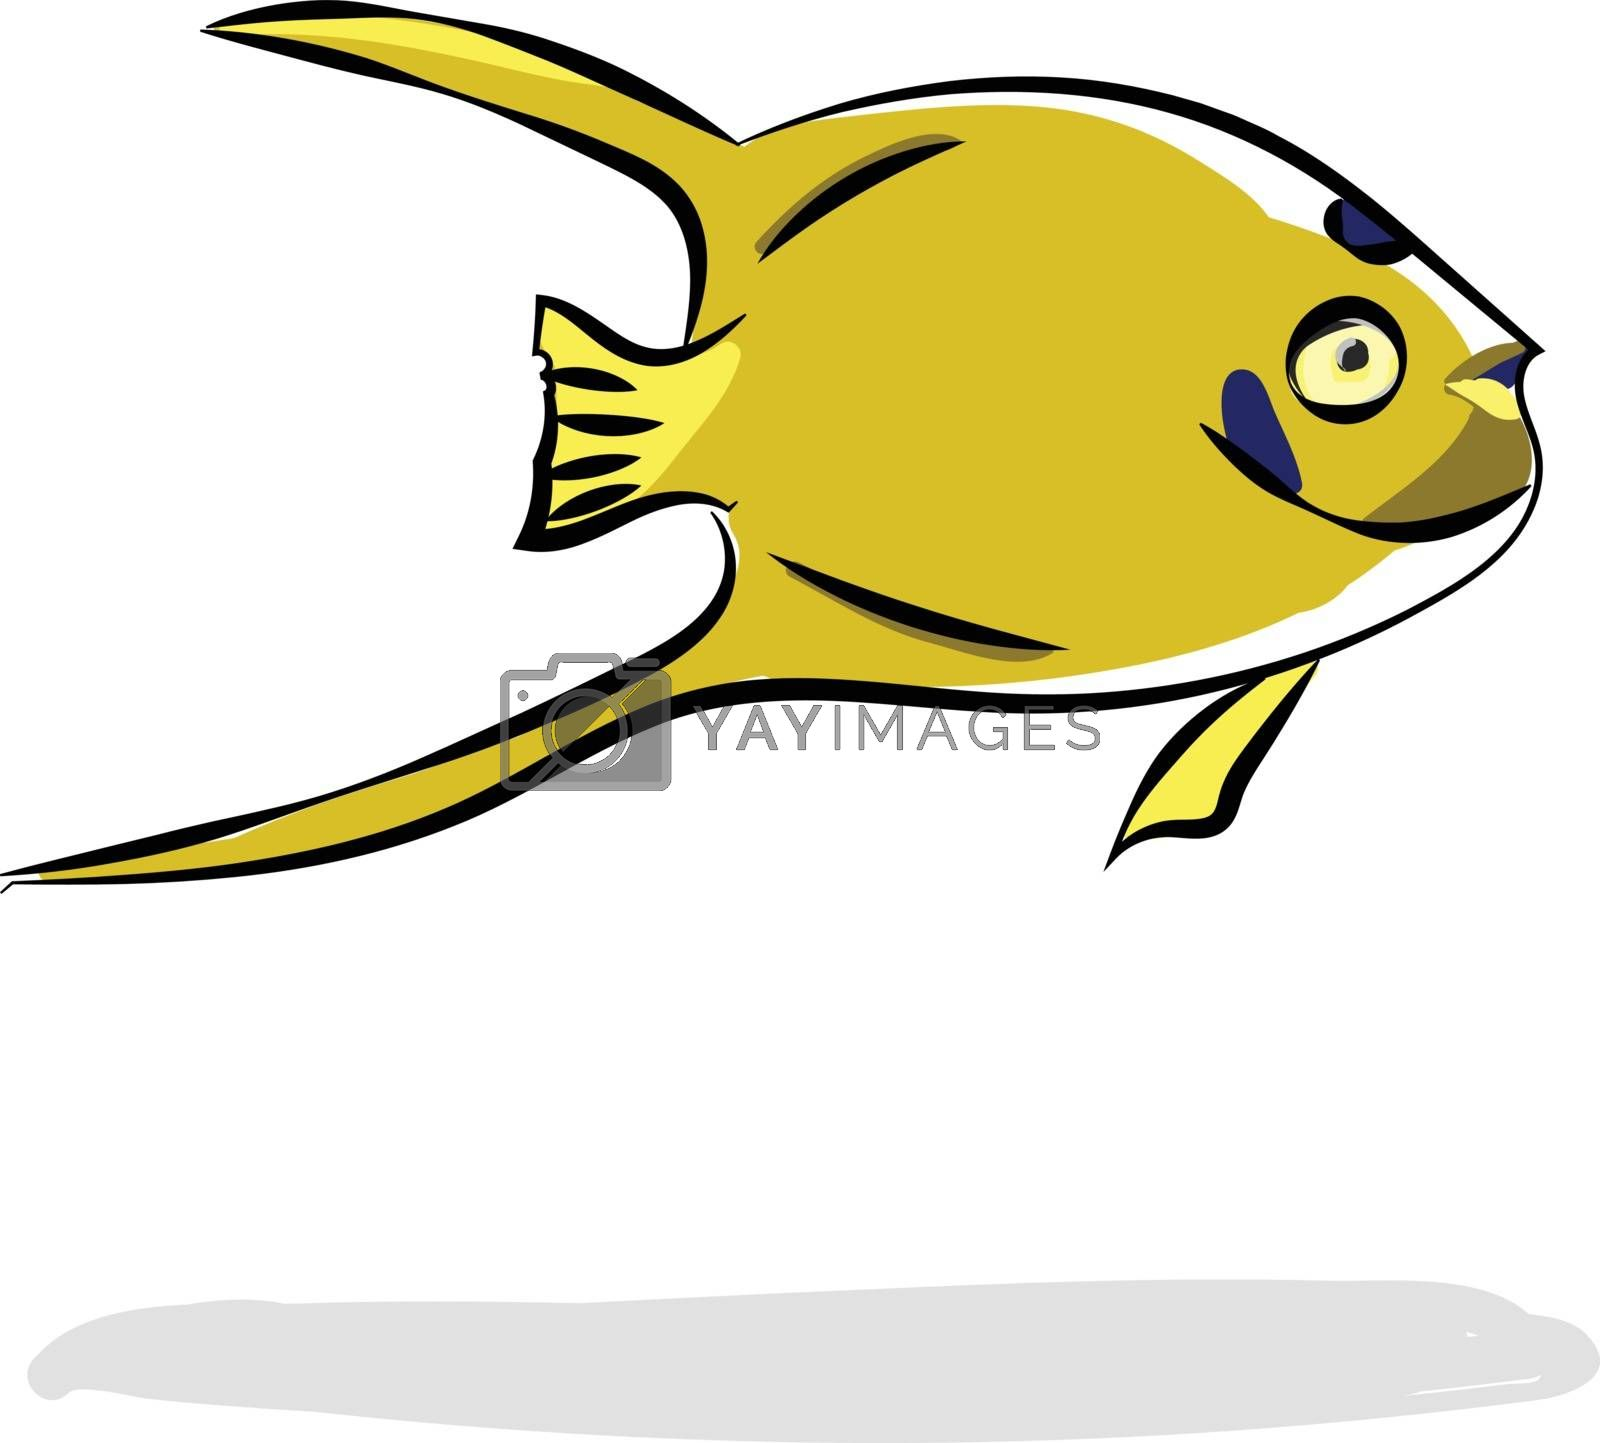 Royalty free image of Painting of a yellow-colored fish vector or color illustration by Morphart